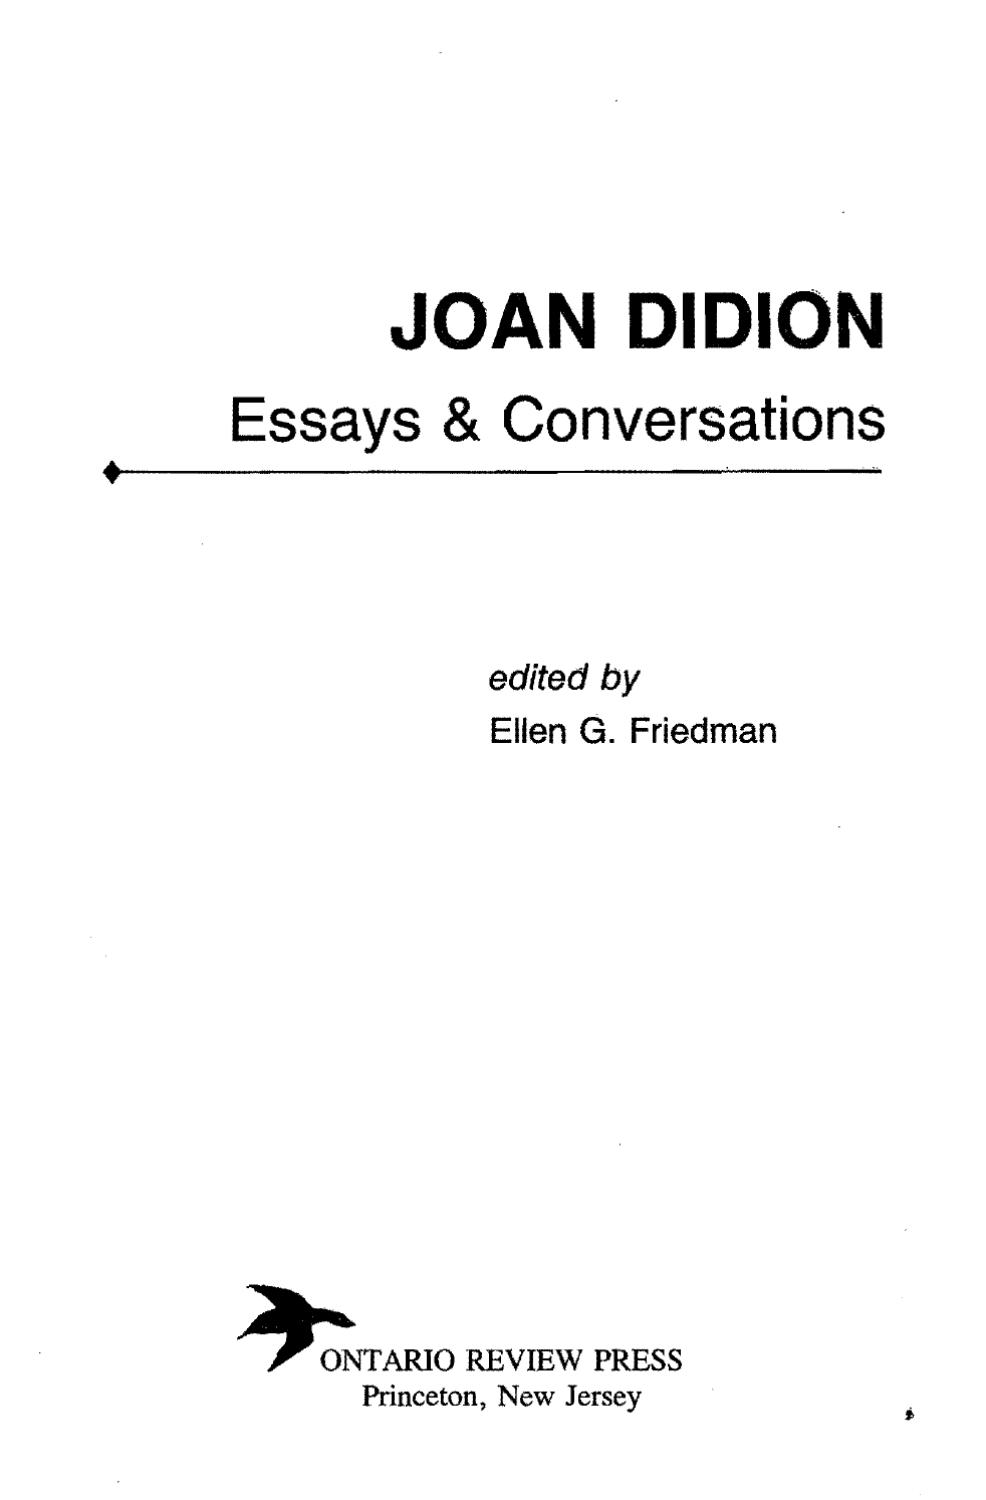 017 Essay Example Page 1 Joan Didion Singular Essays Collections On Santa Ana Winds Amazon Full